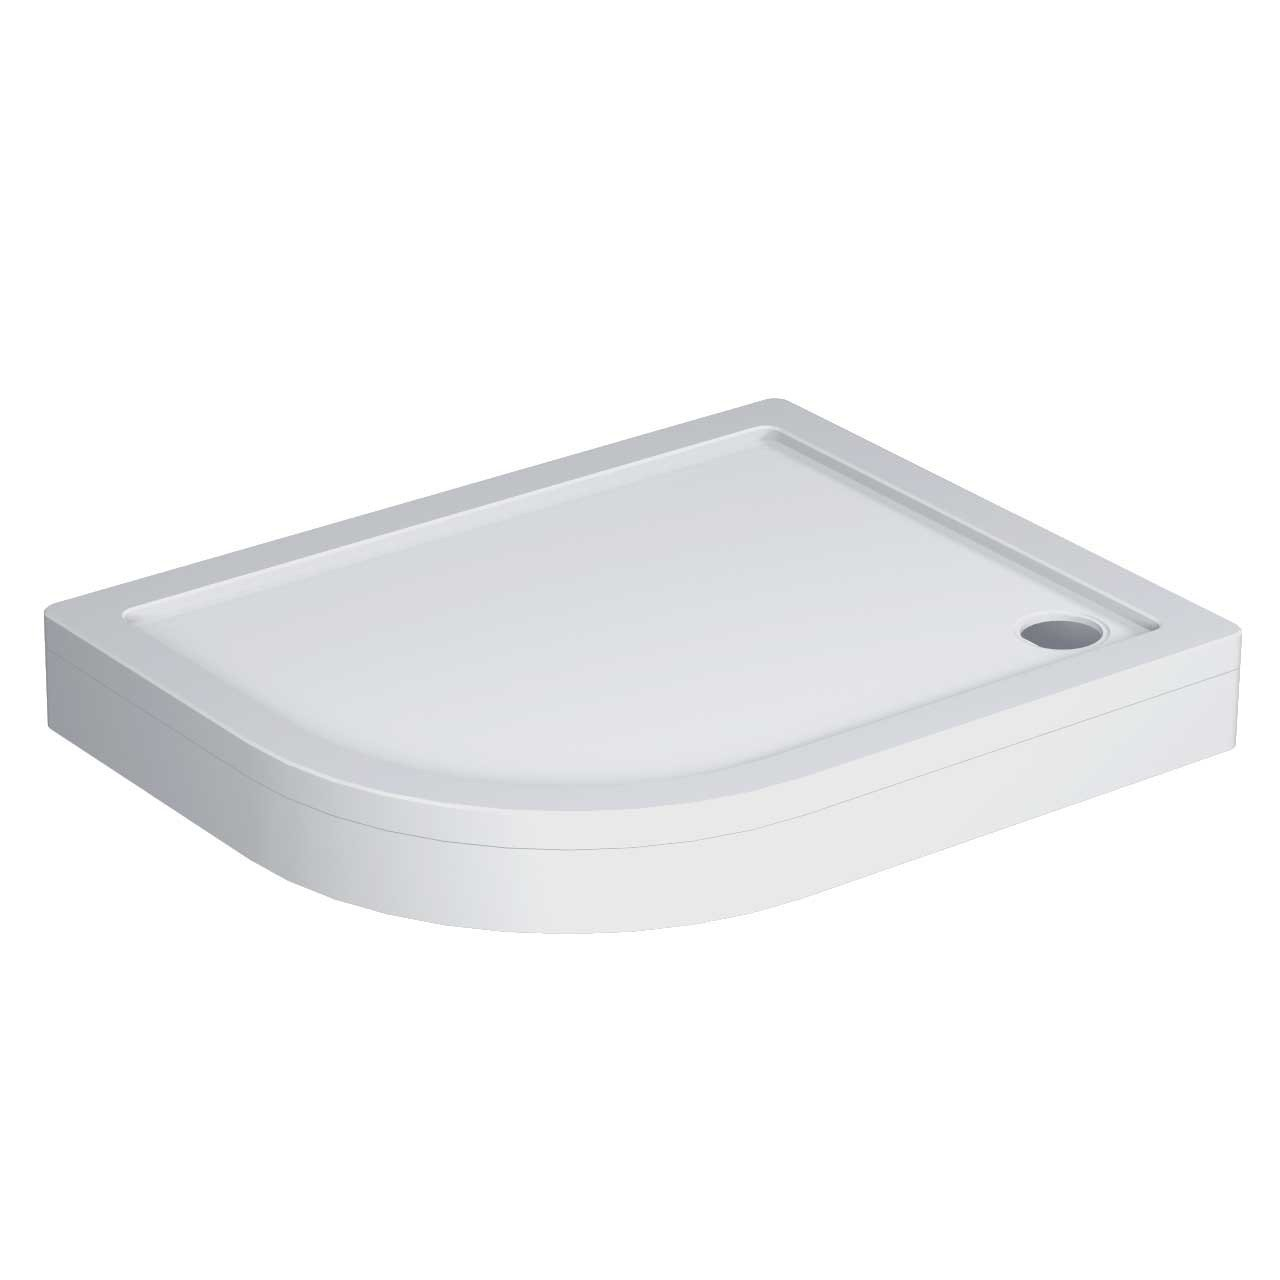 40mm Pearlstone 1000 x 800 Left Hand Offset Quadrant Shower Tray & Plinth Angled View